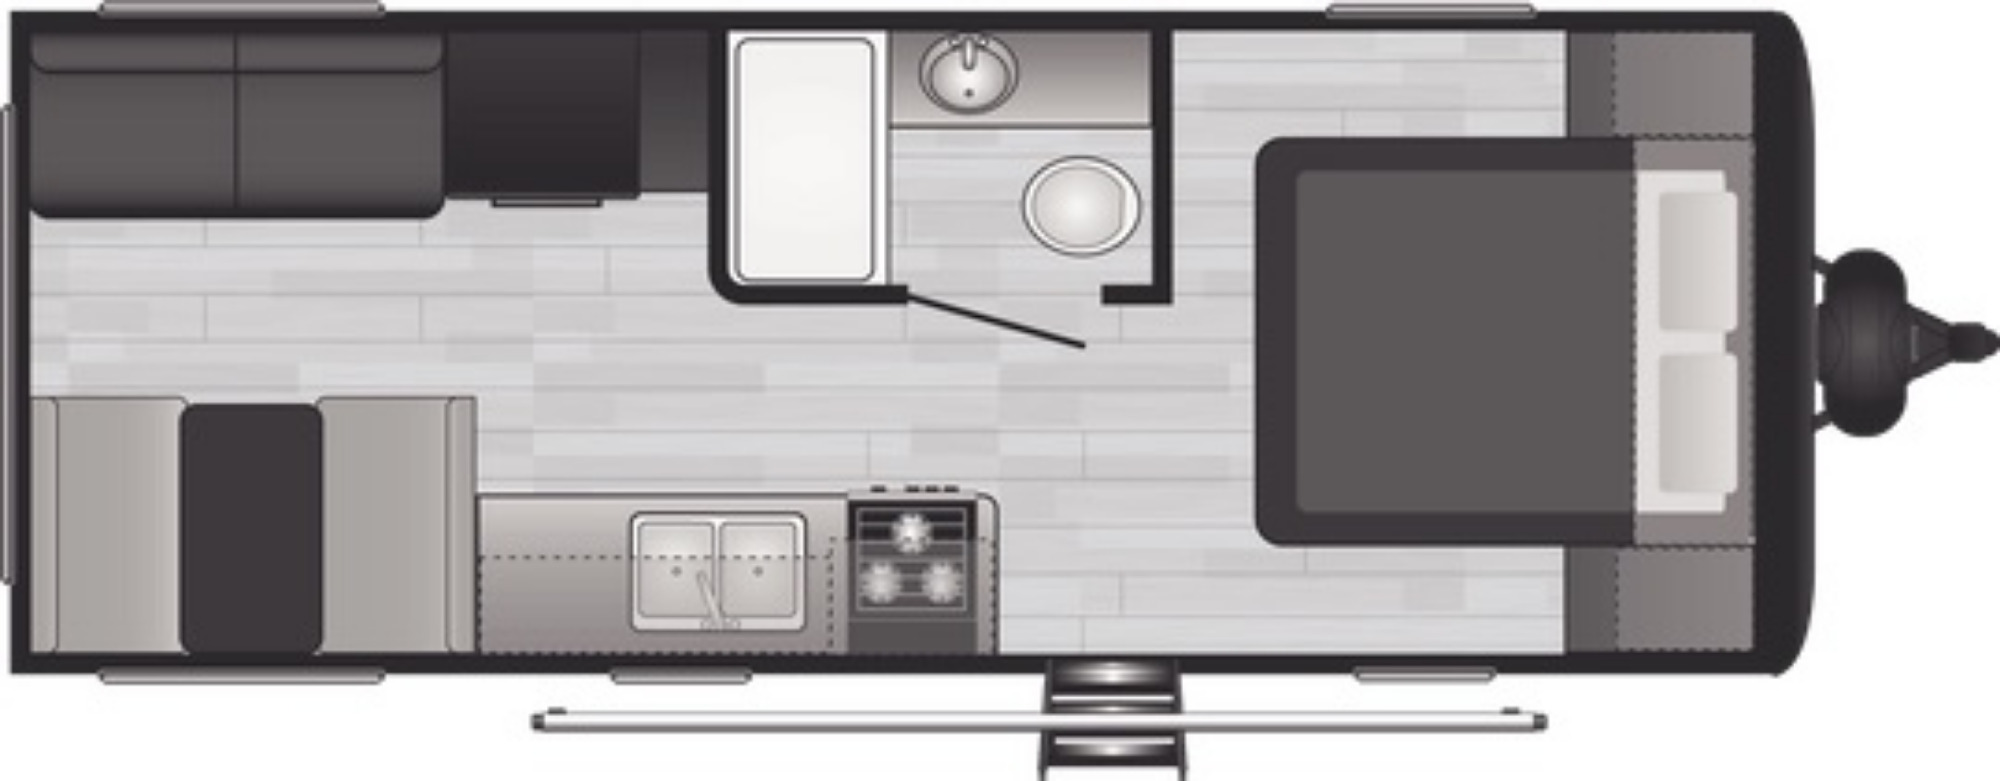 View Floor Plan for 2021 KEYSTONE HIDEOUT 20RDWES